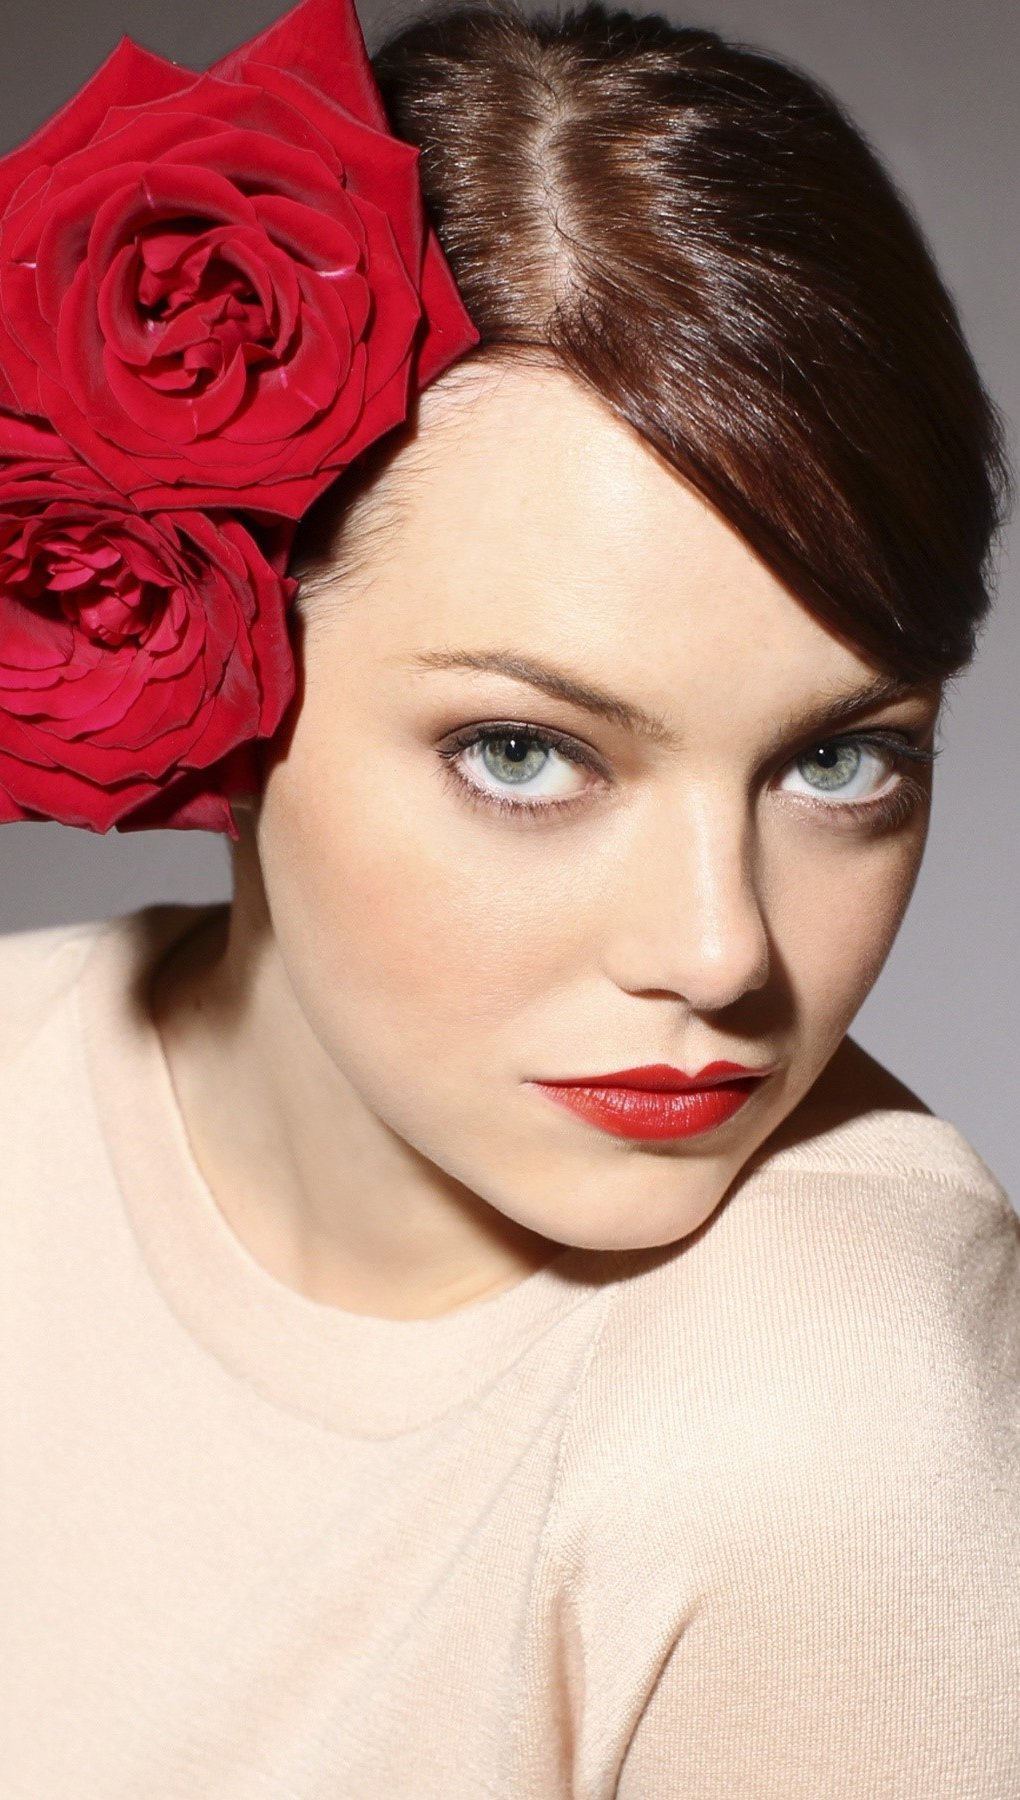 Wallpaper Emma Stone with a headdress of roses Vertical